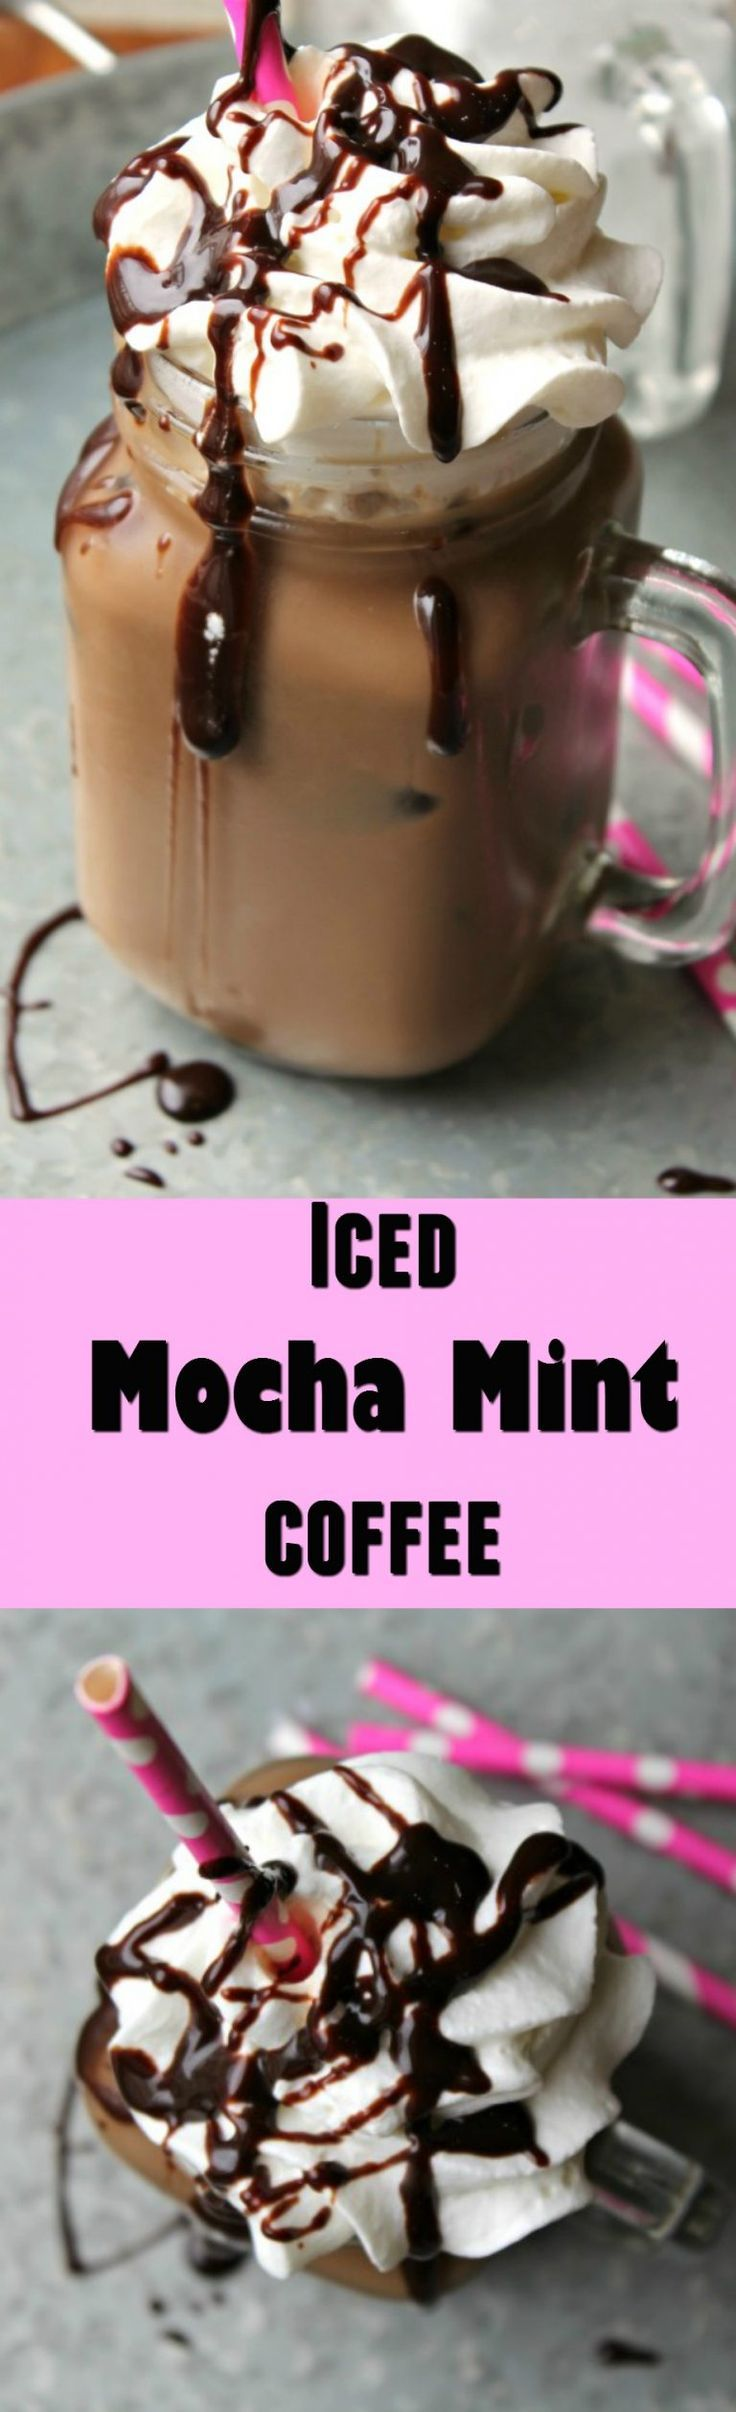 Iced Mocha Mint Coffee  -  My at home take on a coffee shop favorite.  Mine is made easily and at a fraction of the cost of a coffee shop.  @walmart #FoundMyDelight @indelight  #ad